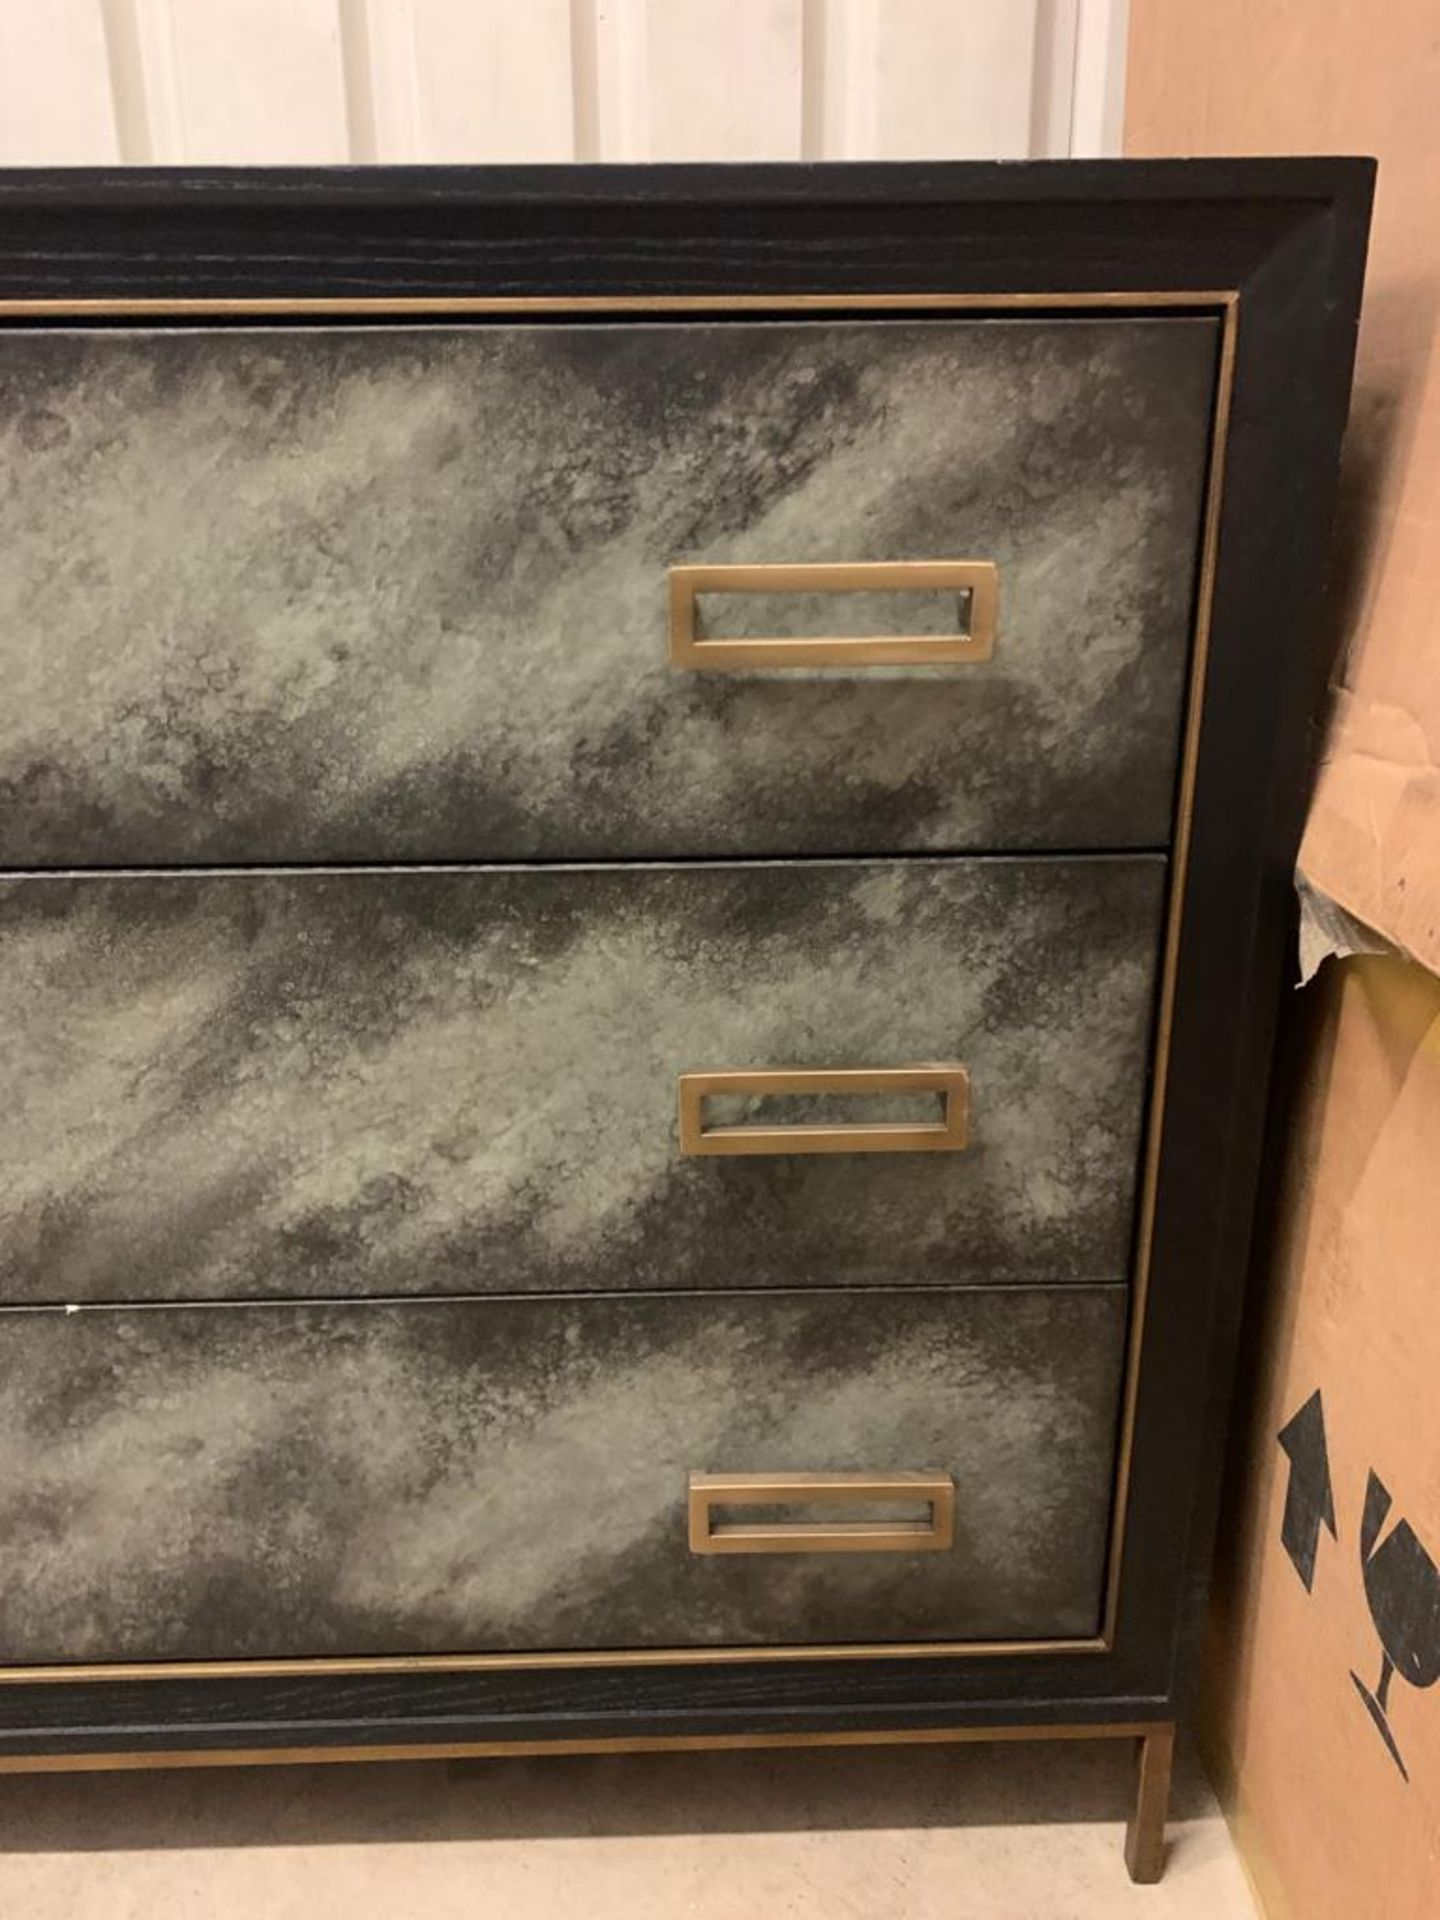 Levi 3 Drawer Chest Wrapped In A Faux Velum On Leather In A Charcoal Finish On Satin Brass - Image 2 of 4